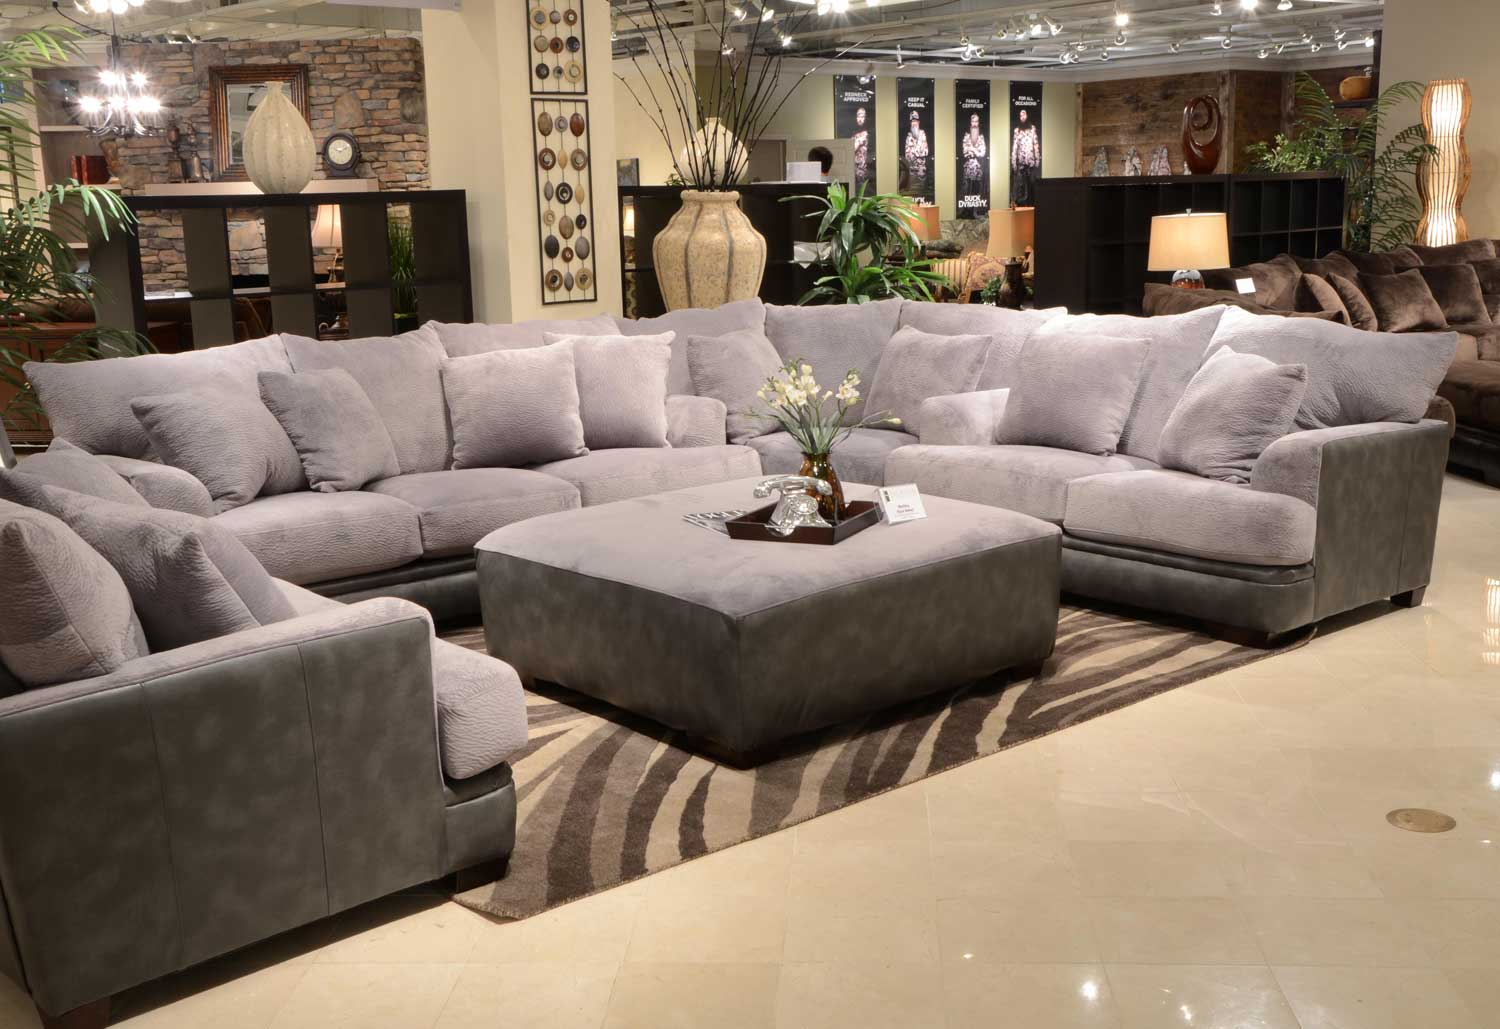 Jackson barkley sectional sofa set grey jf 4442 sect set for Jackson furniture sectional sofa